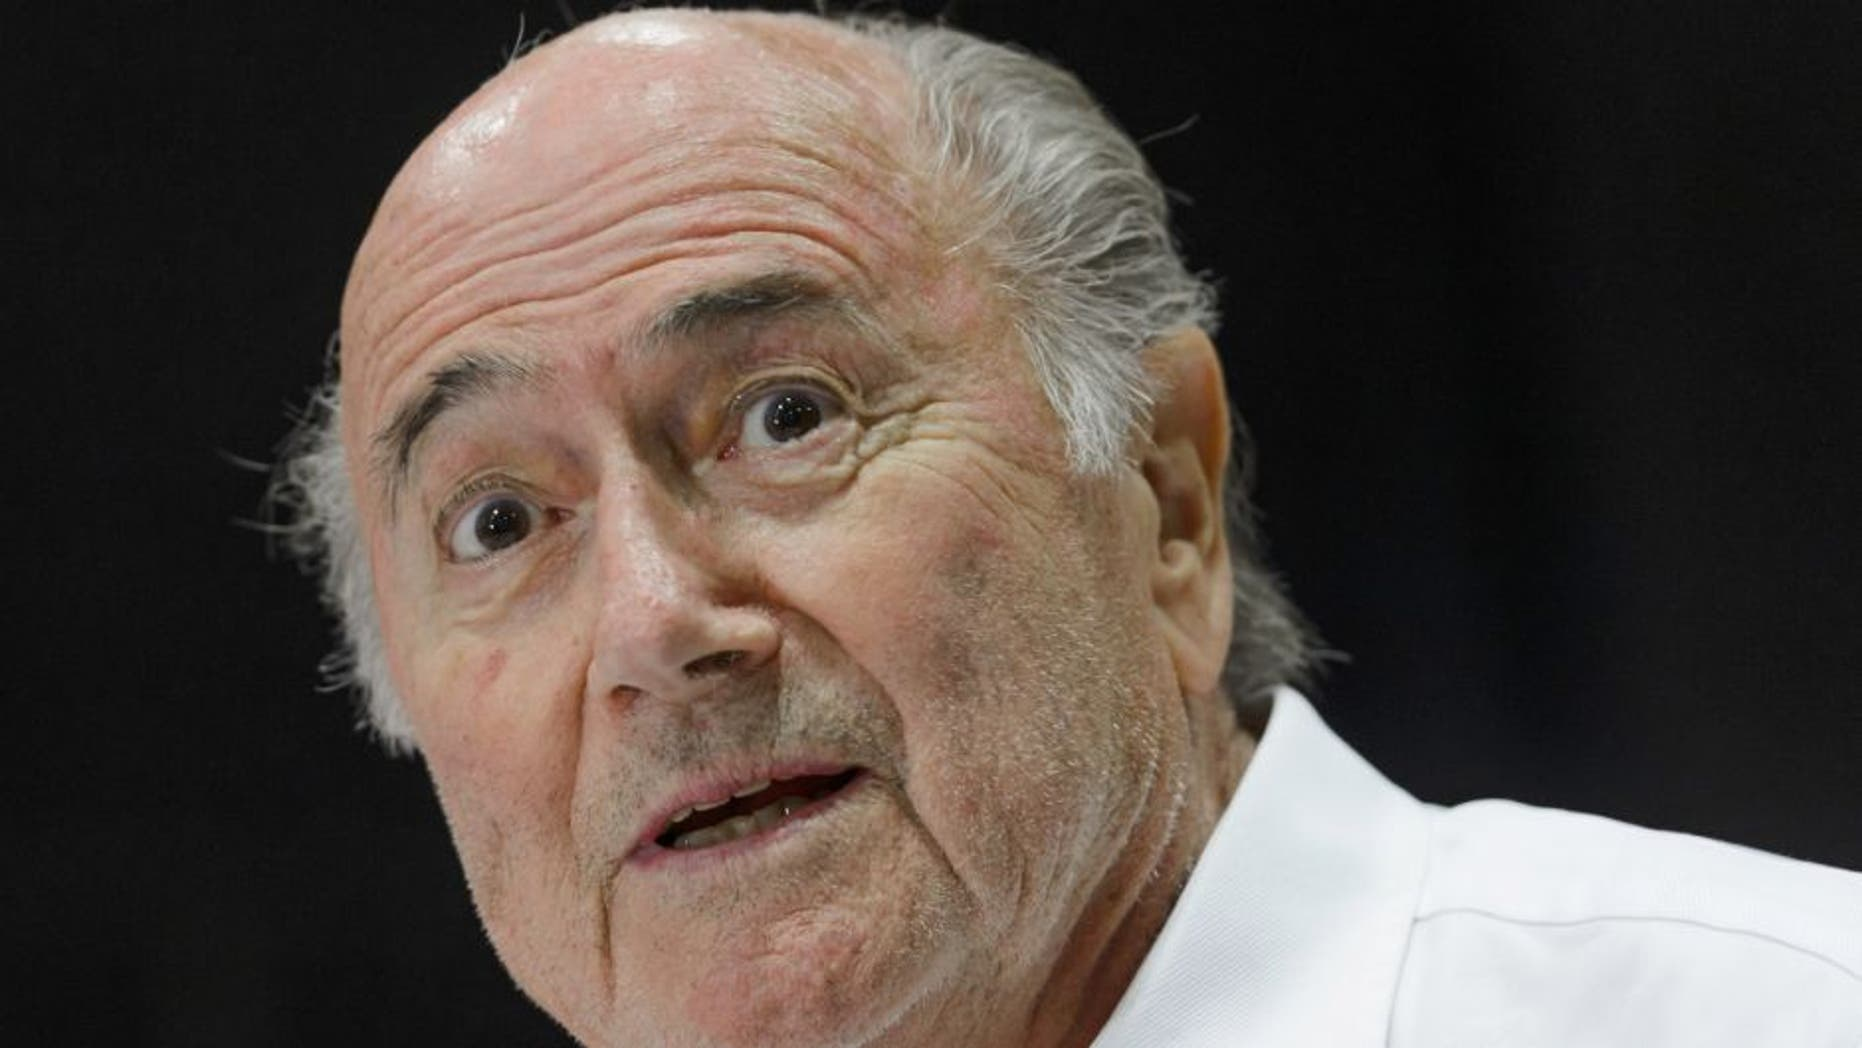 """Outgoing FIFA president Sepp Blatter answers to a press conference during the """"Sepp Blatter Tournament"""" on August 22, 2015 in Ulrichen, Blatter's hometown. When Blatter was elected FIFA President in 1998, the town awarded him with the """"honorary burgher"""" of Ulrichen title and to commemorate the occasion, a football tournament bearing his name was created. AFP PHOTO / FABRICE COFFRINI (Photo credit should read FABRICE COFFRINI/AFP/Getty Images)"""